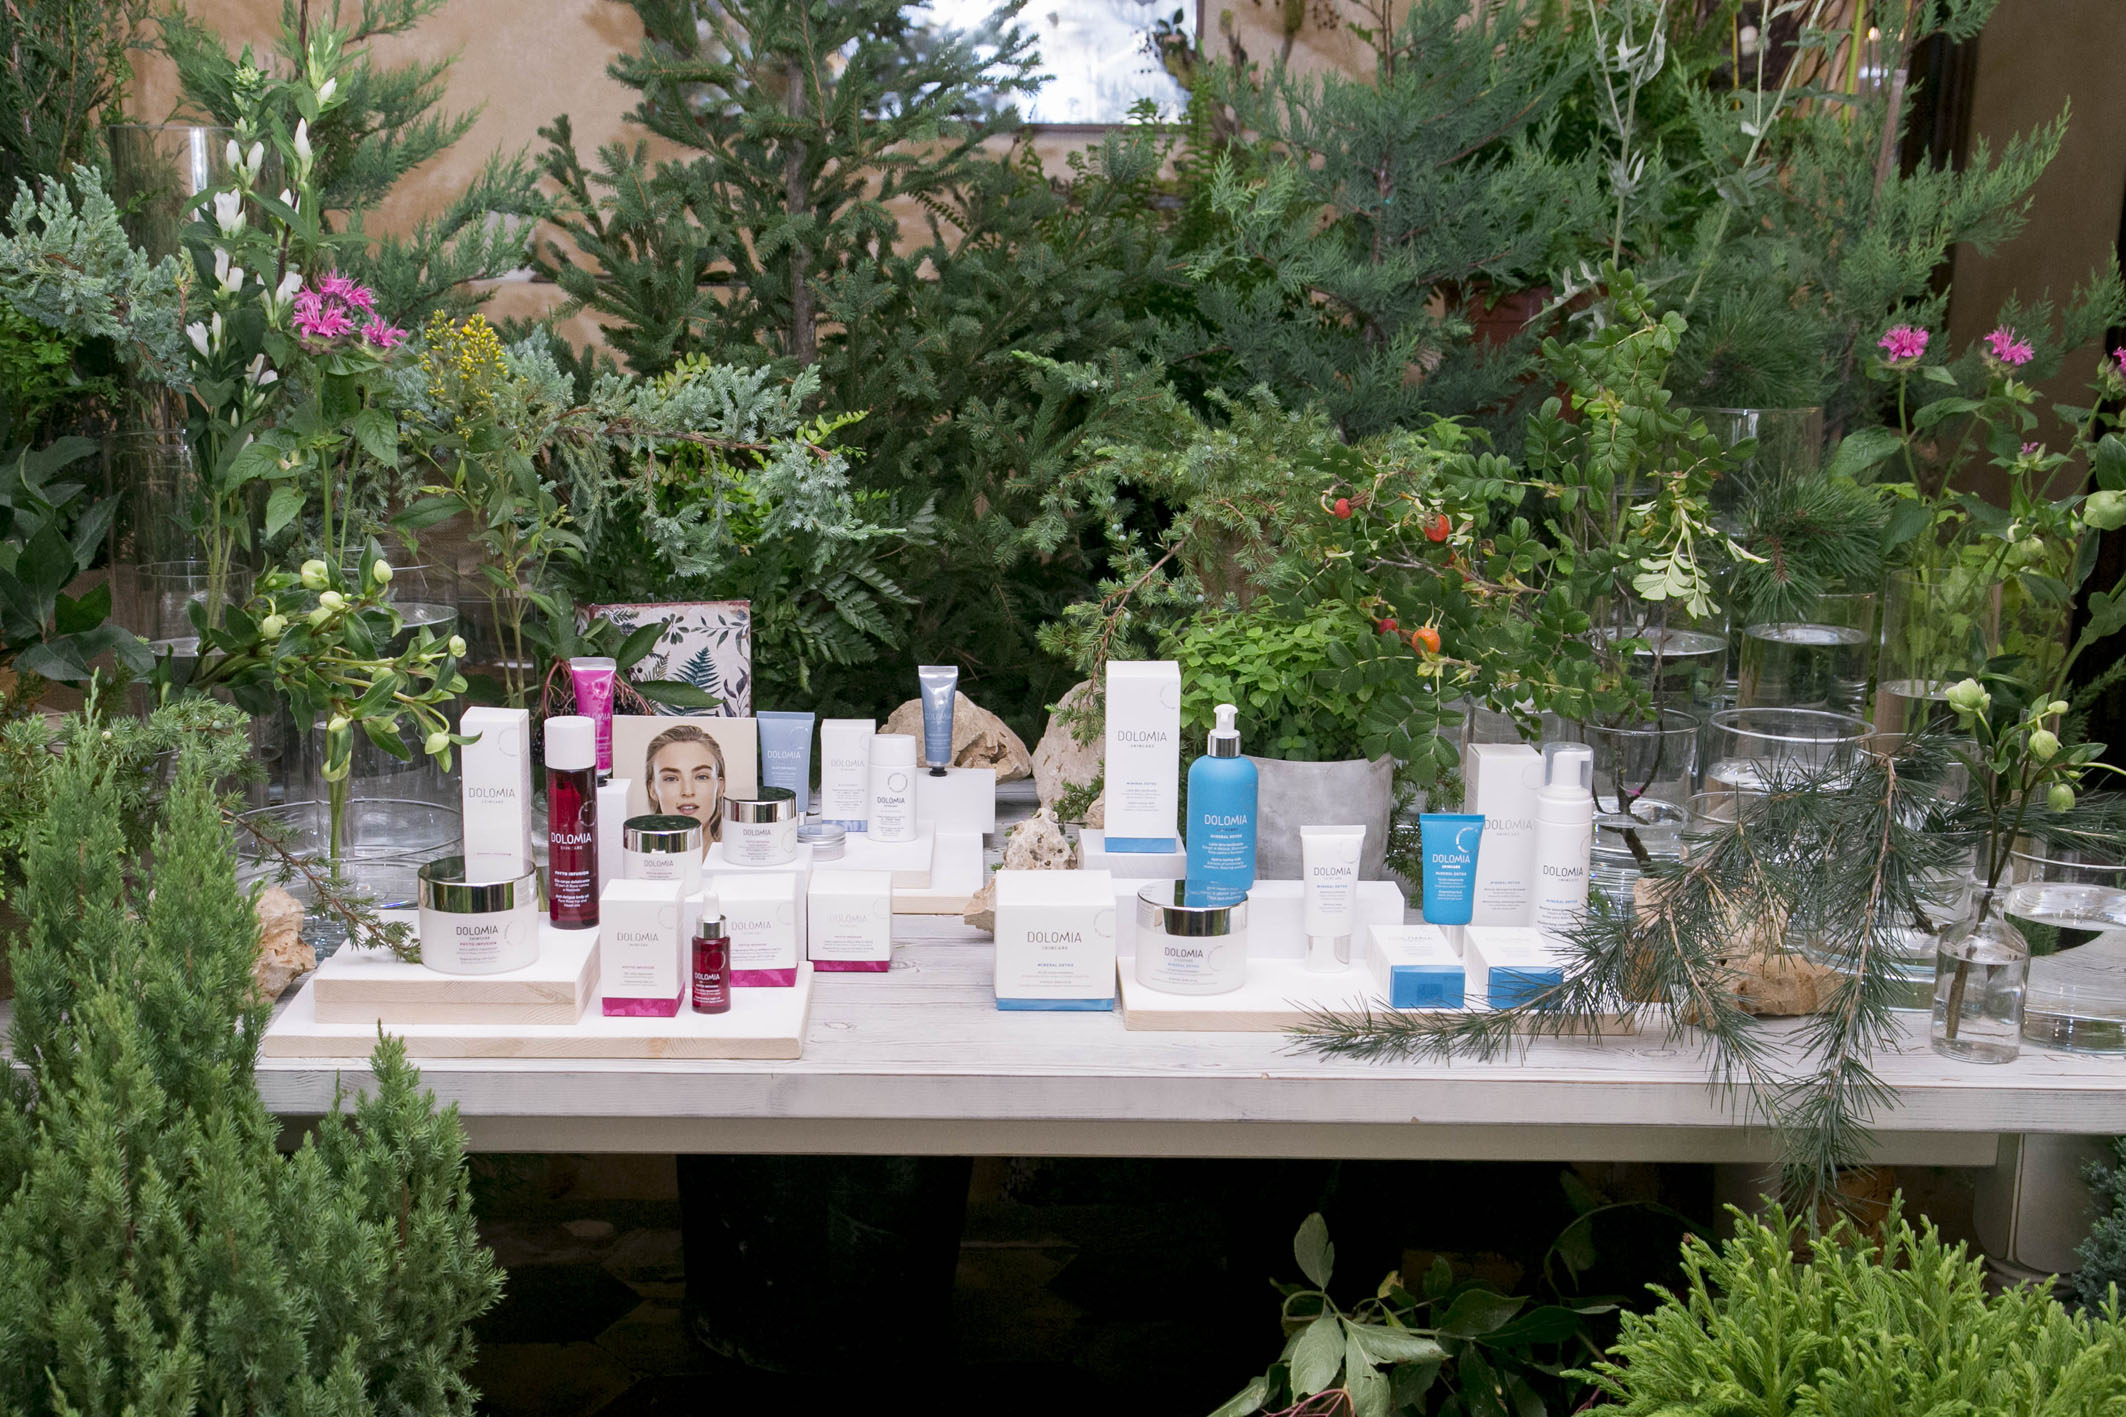 Dolomia Skincare new launch set styling project @ Fioraio Bianchi 02